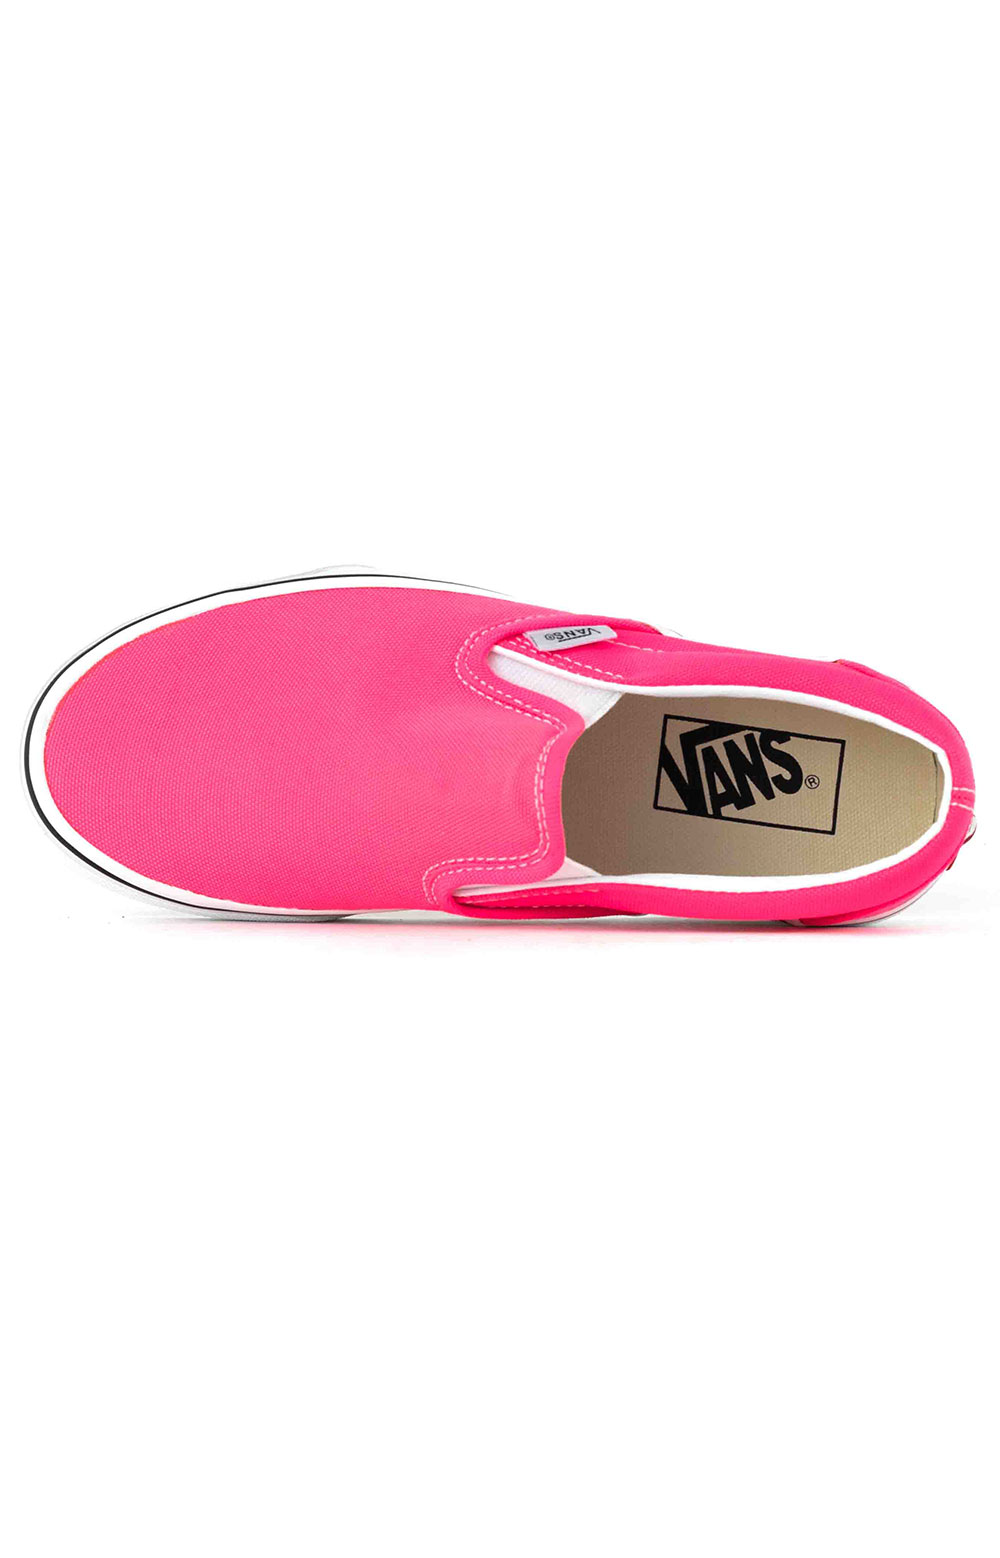 (U38WT6) Neon Classic Slip-On Shoes - Knockout Pink 2